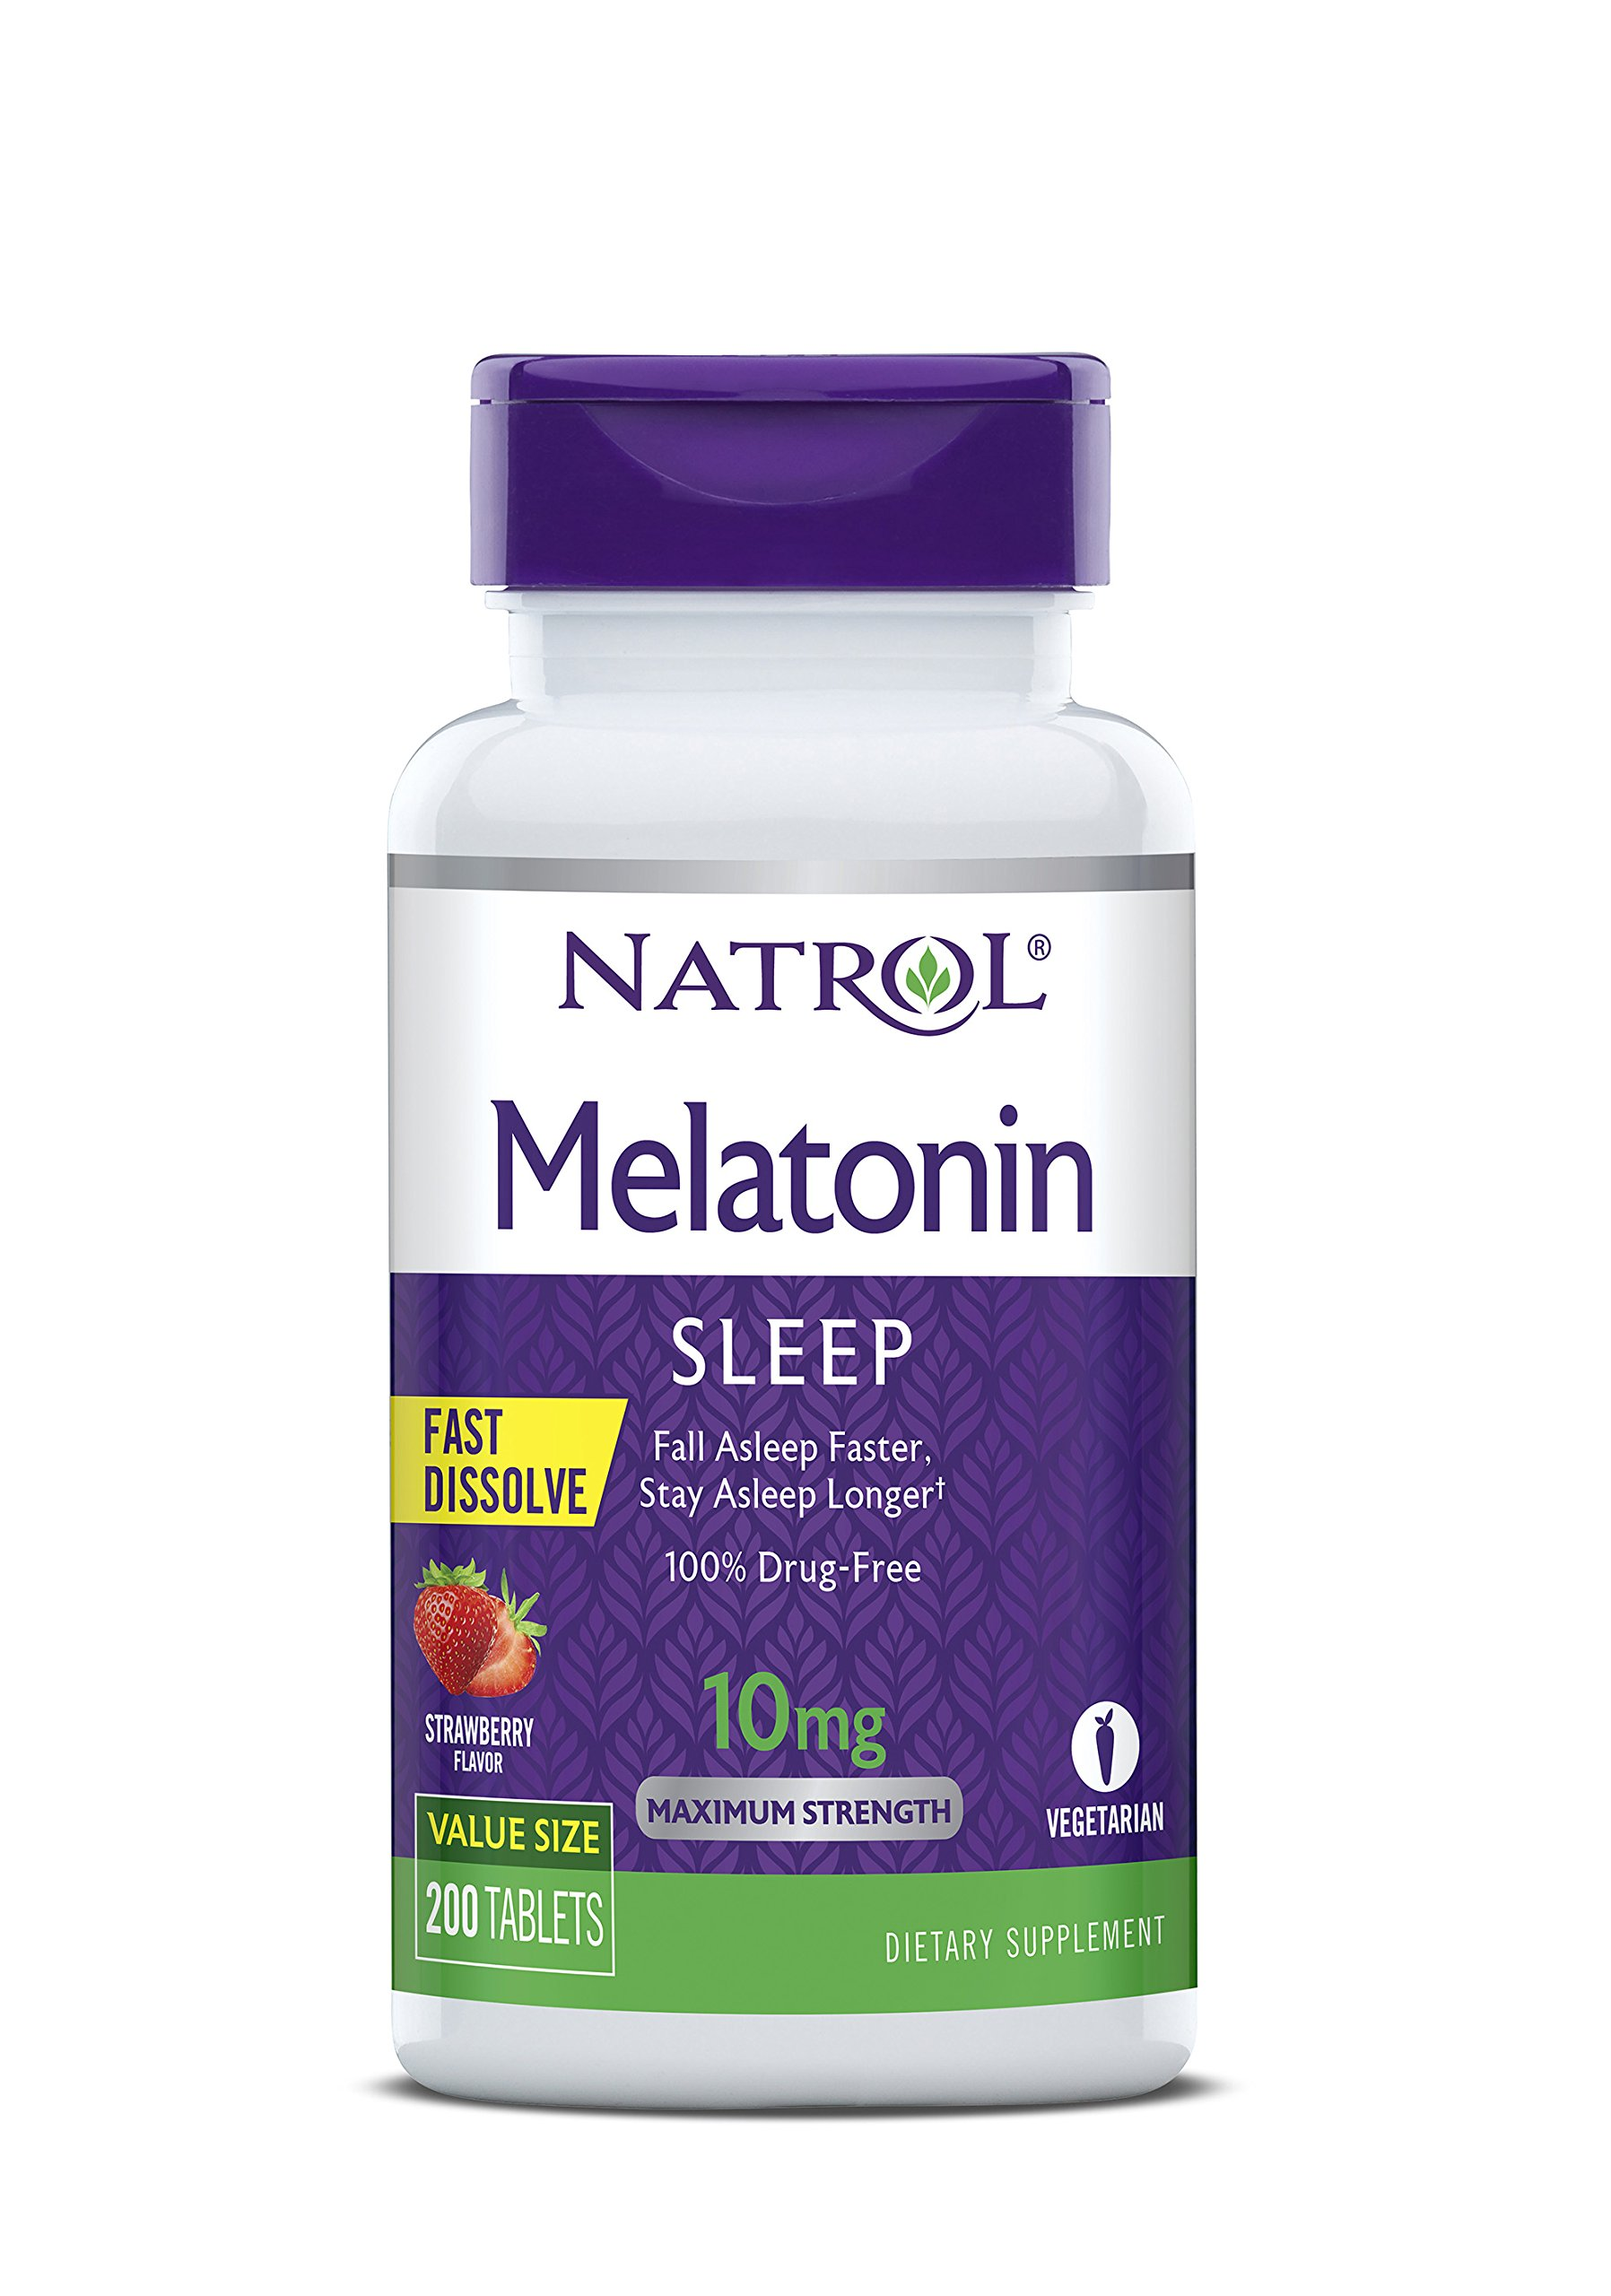 Natrol Melatonin Fast Dissolve Tablets, Strawberry Flavor, 10mg, 200 Count